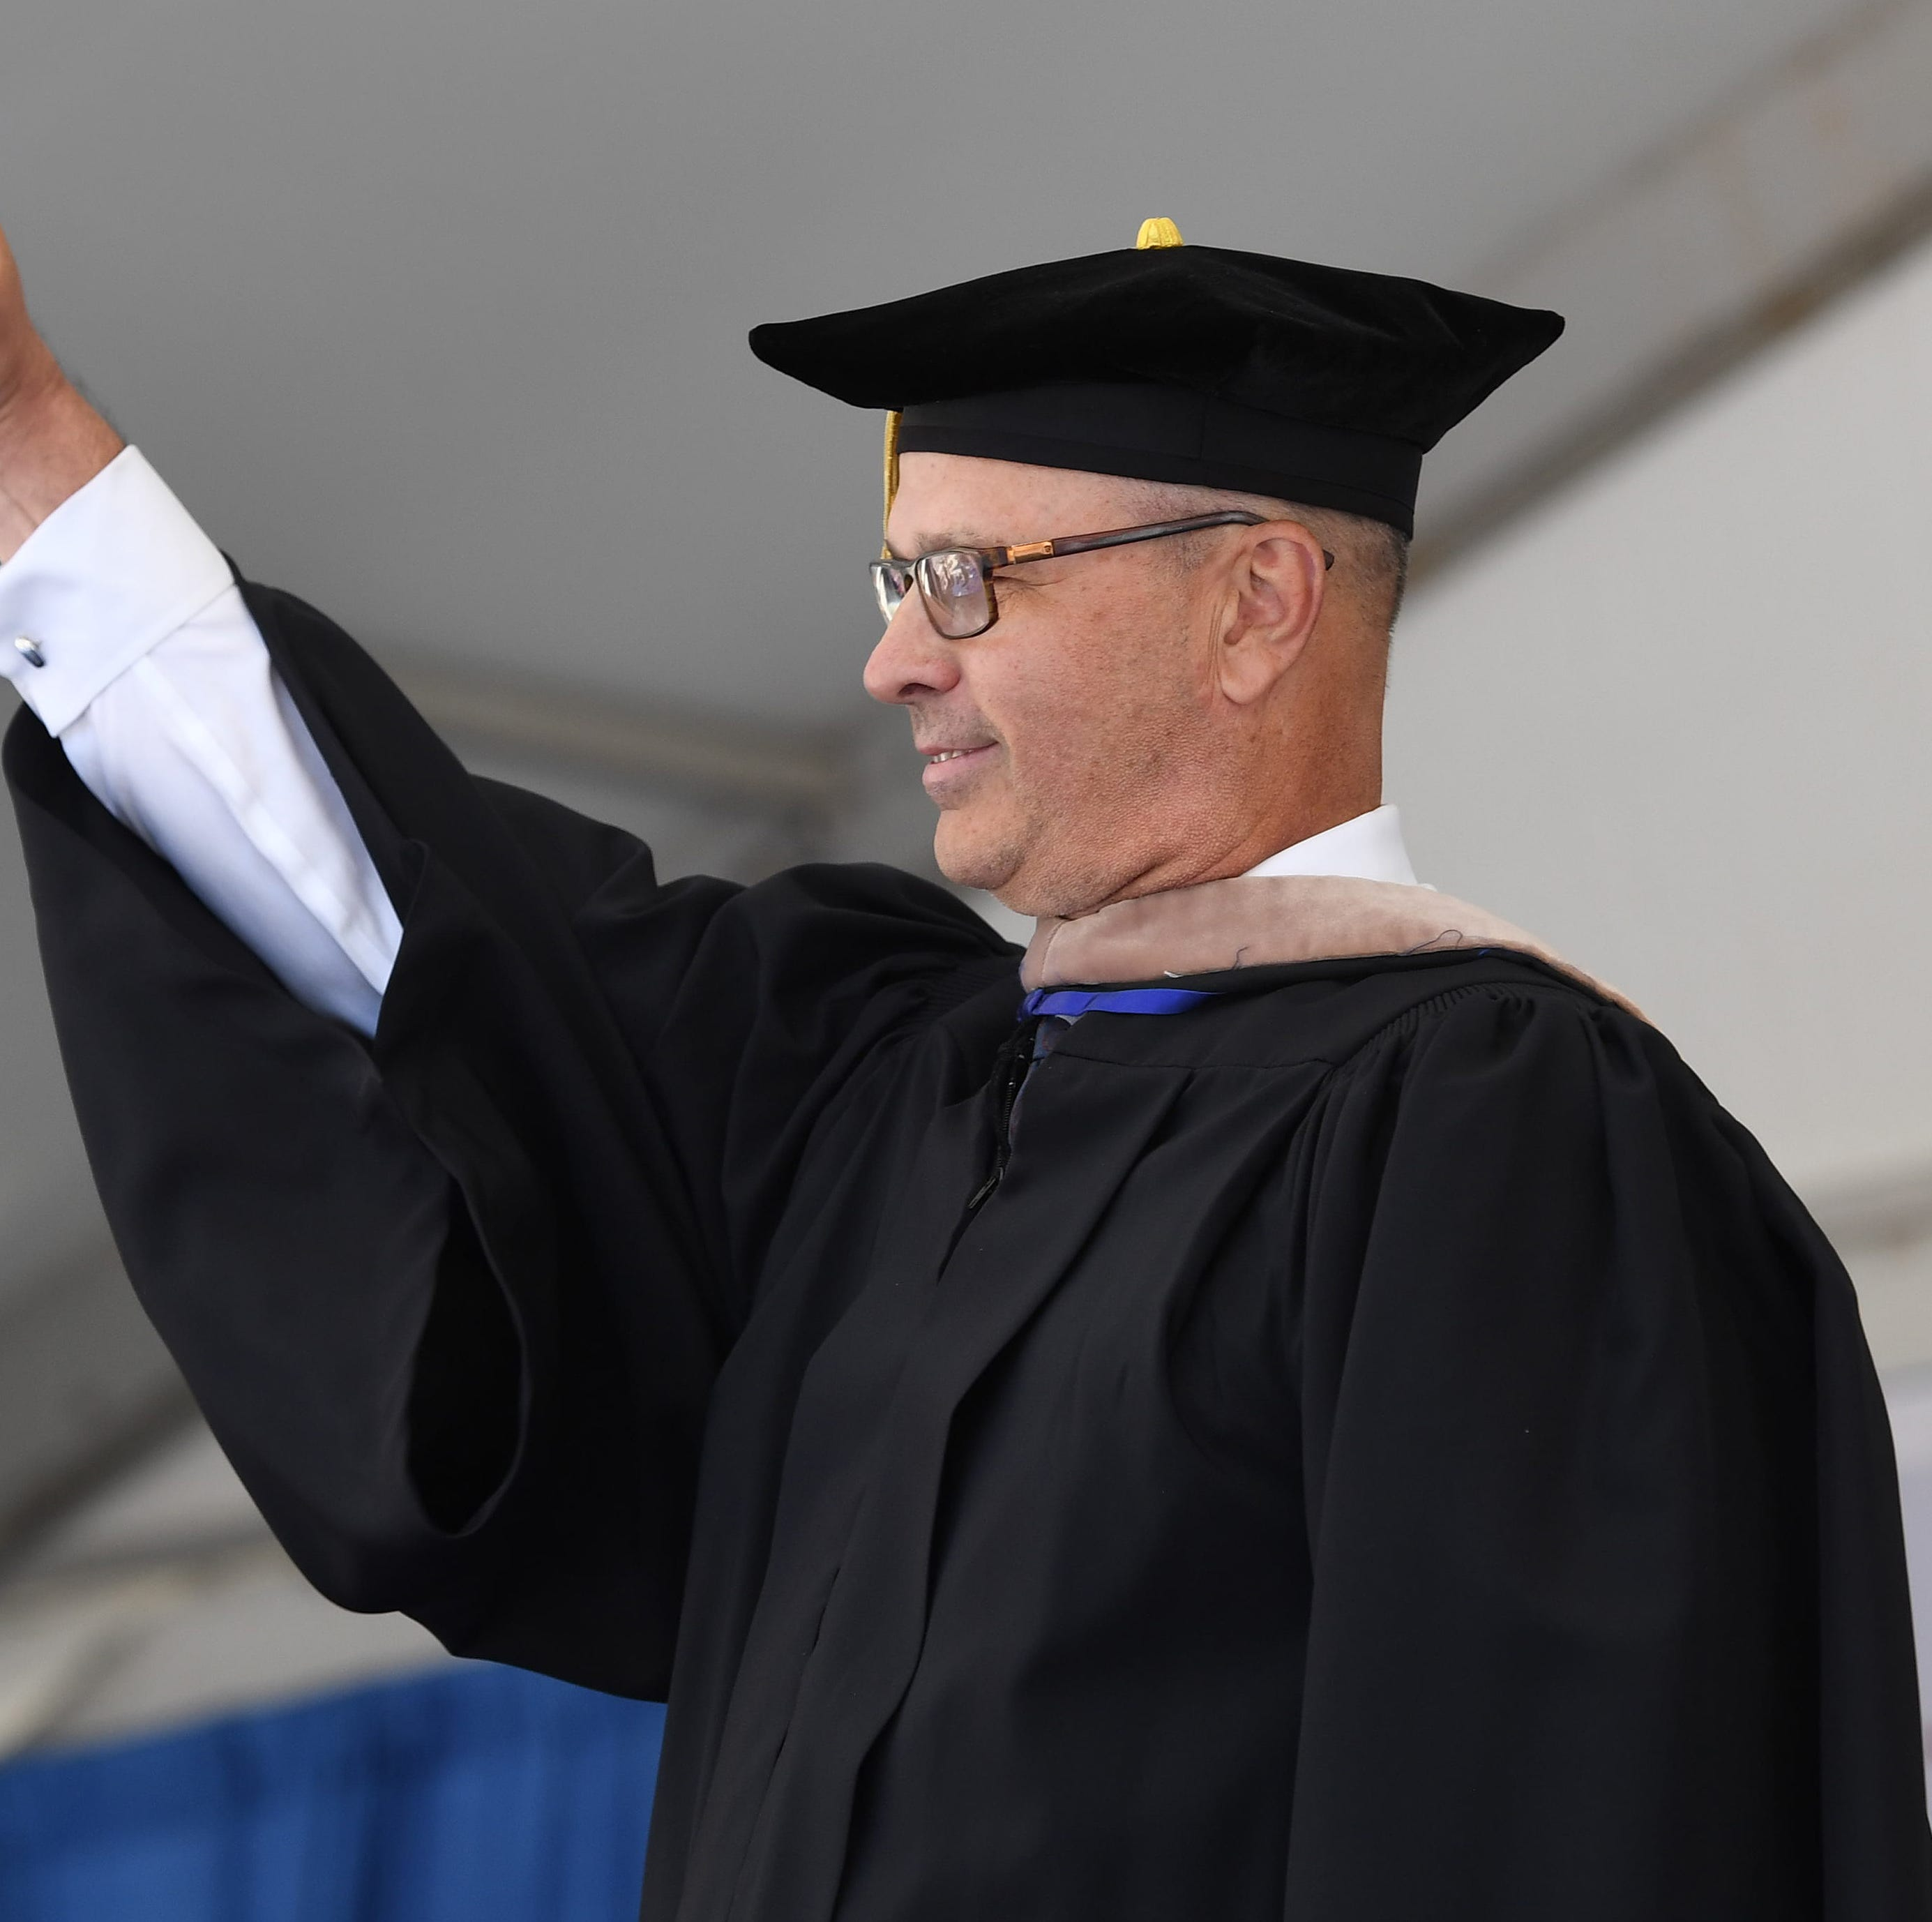 Greg Herenda tells FDU's graduating class: Your exams are not over